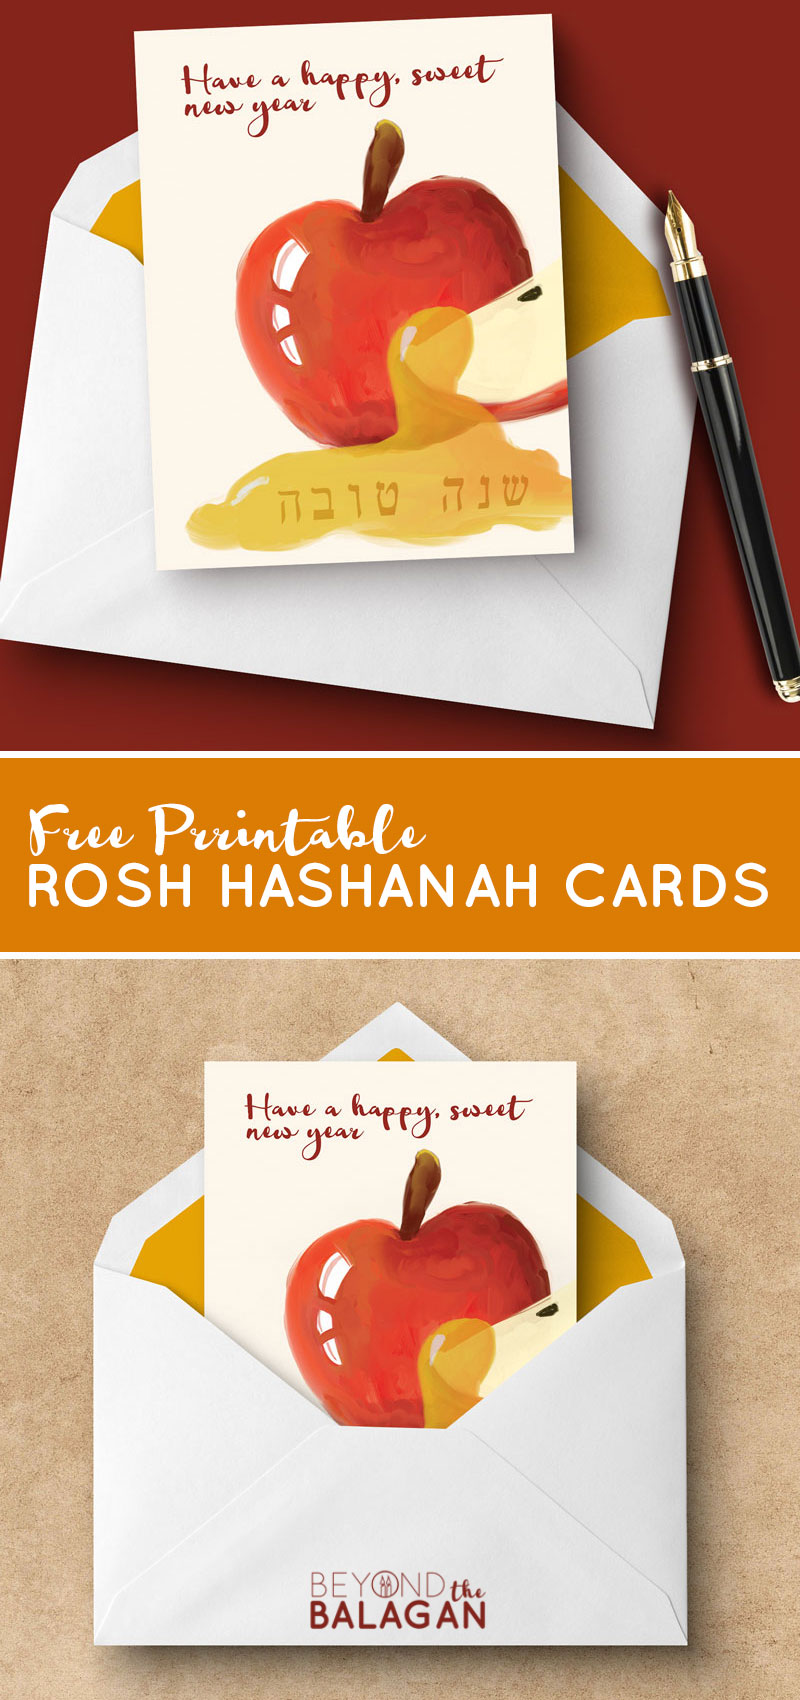 graphic relating to Rosh Hashanah Greeting Cards Printable referred to as Rosh Hashanah Playing cards - Cost-free Printable Greeting Playing cards for the